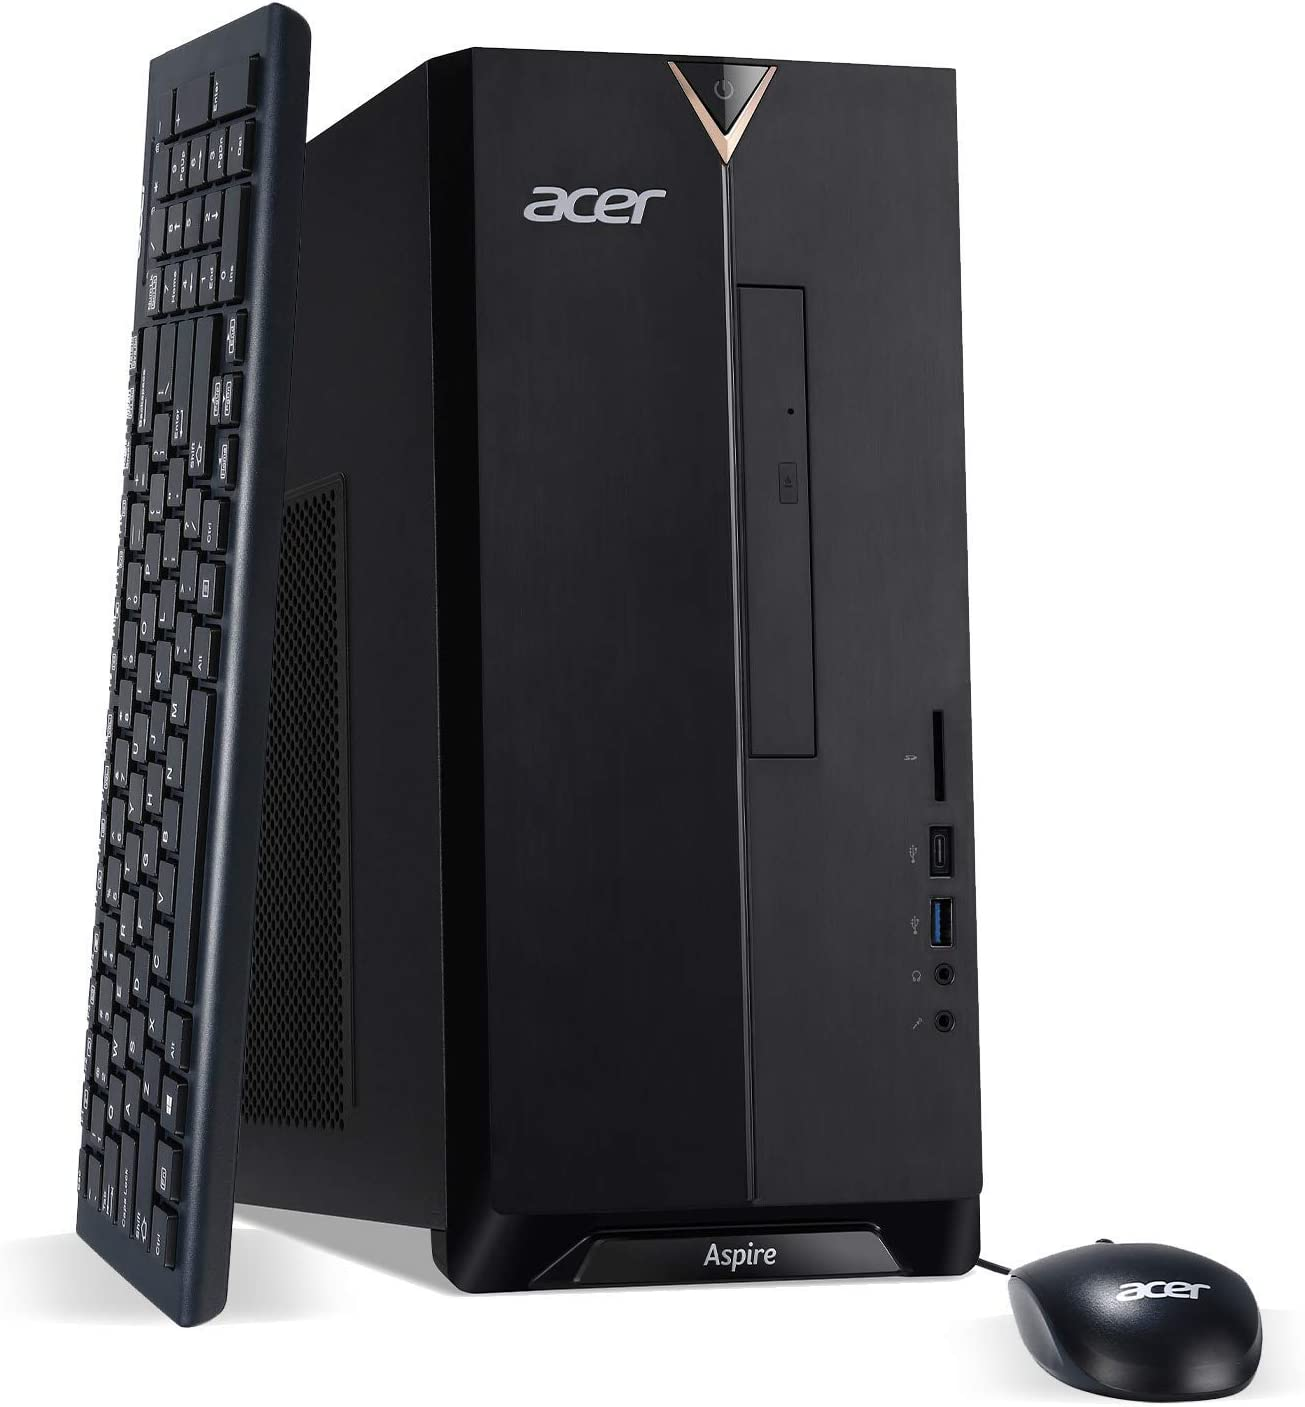 Acer Aspire TC-895-UR12 Desktop, 10th Gen Intel Core i7-10700 8-Core Processor, 16GB 2666MHz DDR4, 512GB NVMe M.2 SSD, 1TB 7200RPM HDD, 8X DVD, 802.11ax WiFi 6, USB 3.2 Type C, Windows 10 Professional